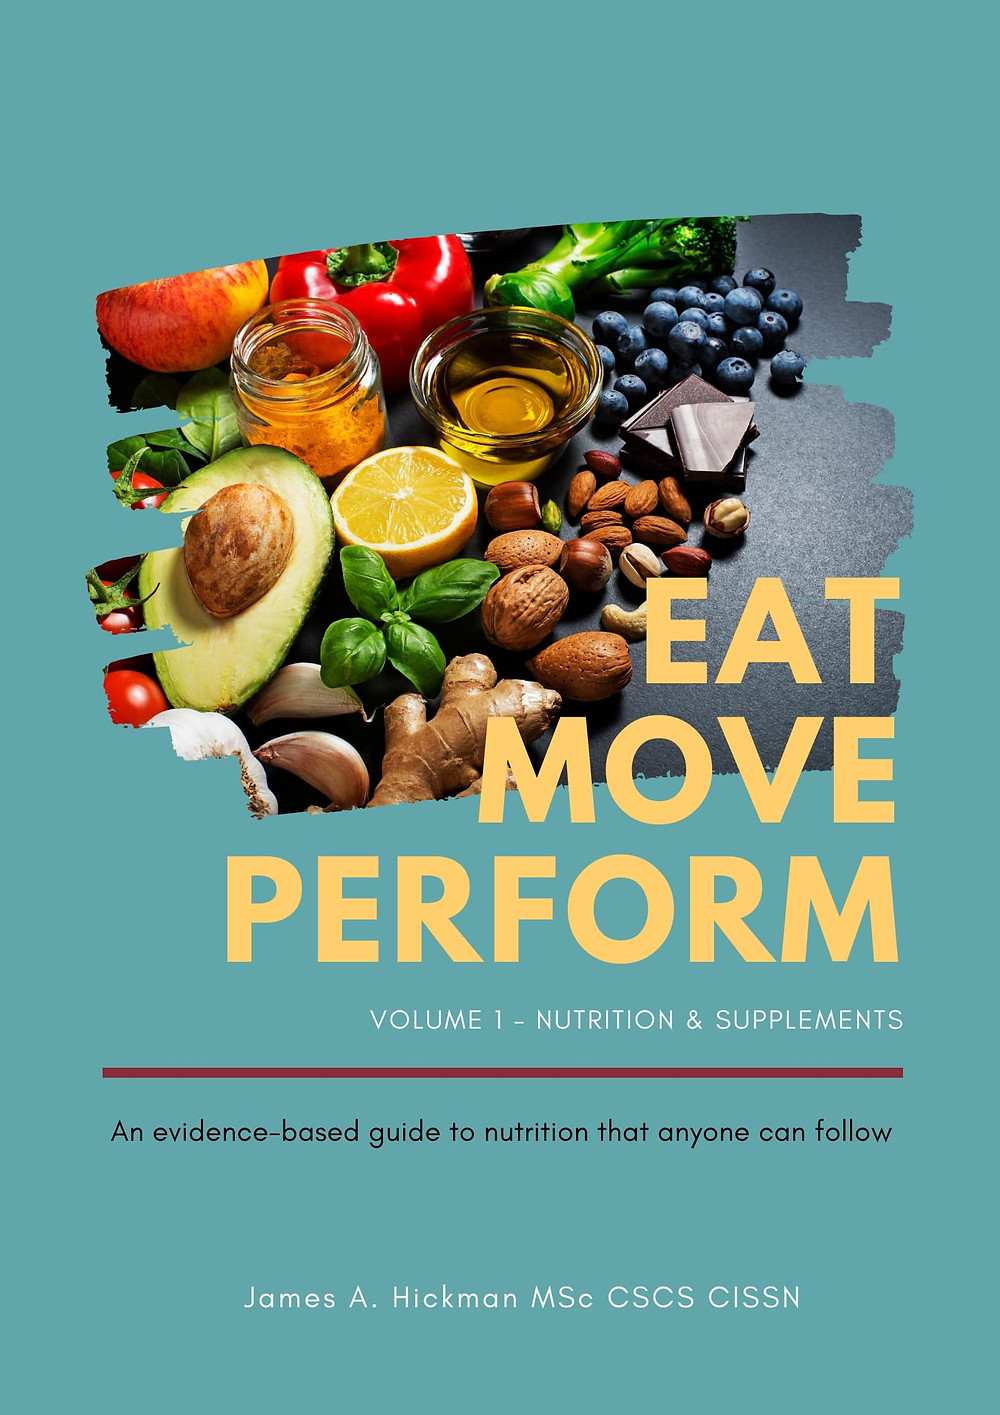 Eat Move Perform: Volume 1 - Nutrition and Supplements